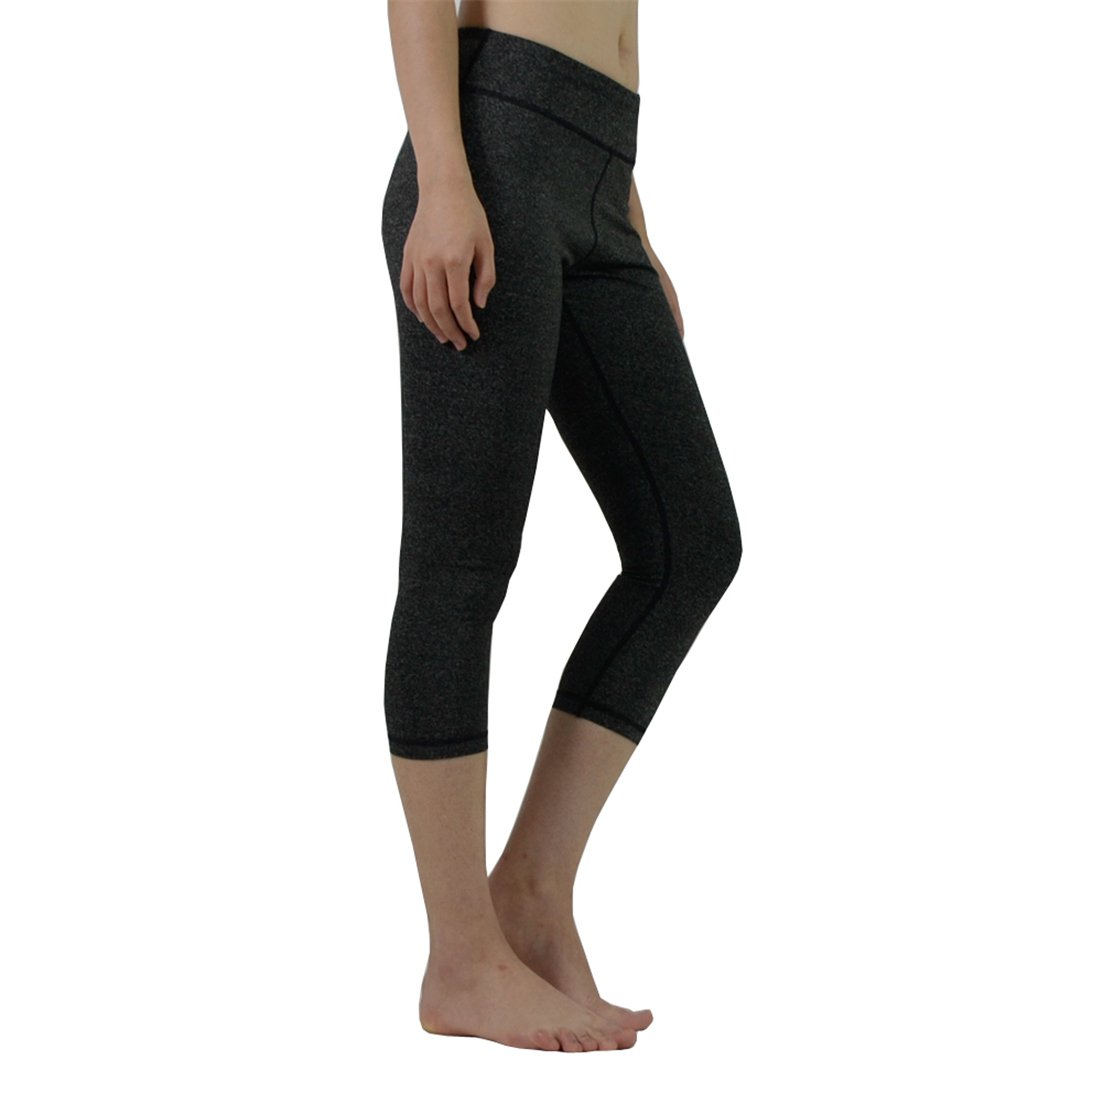 Dark Grey Women's Yoga Capri Pants Workout Running Legging Inner Pocket(SXL)